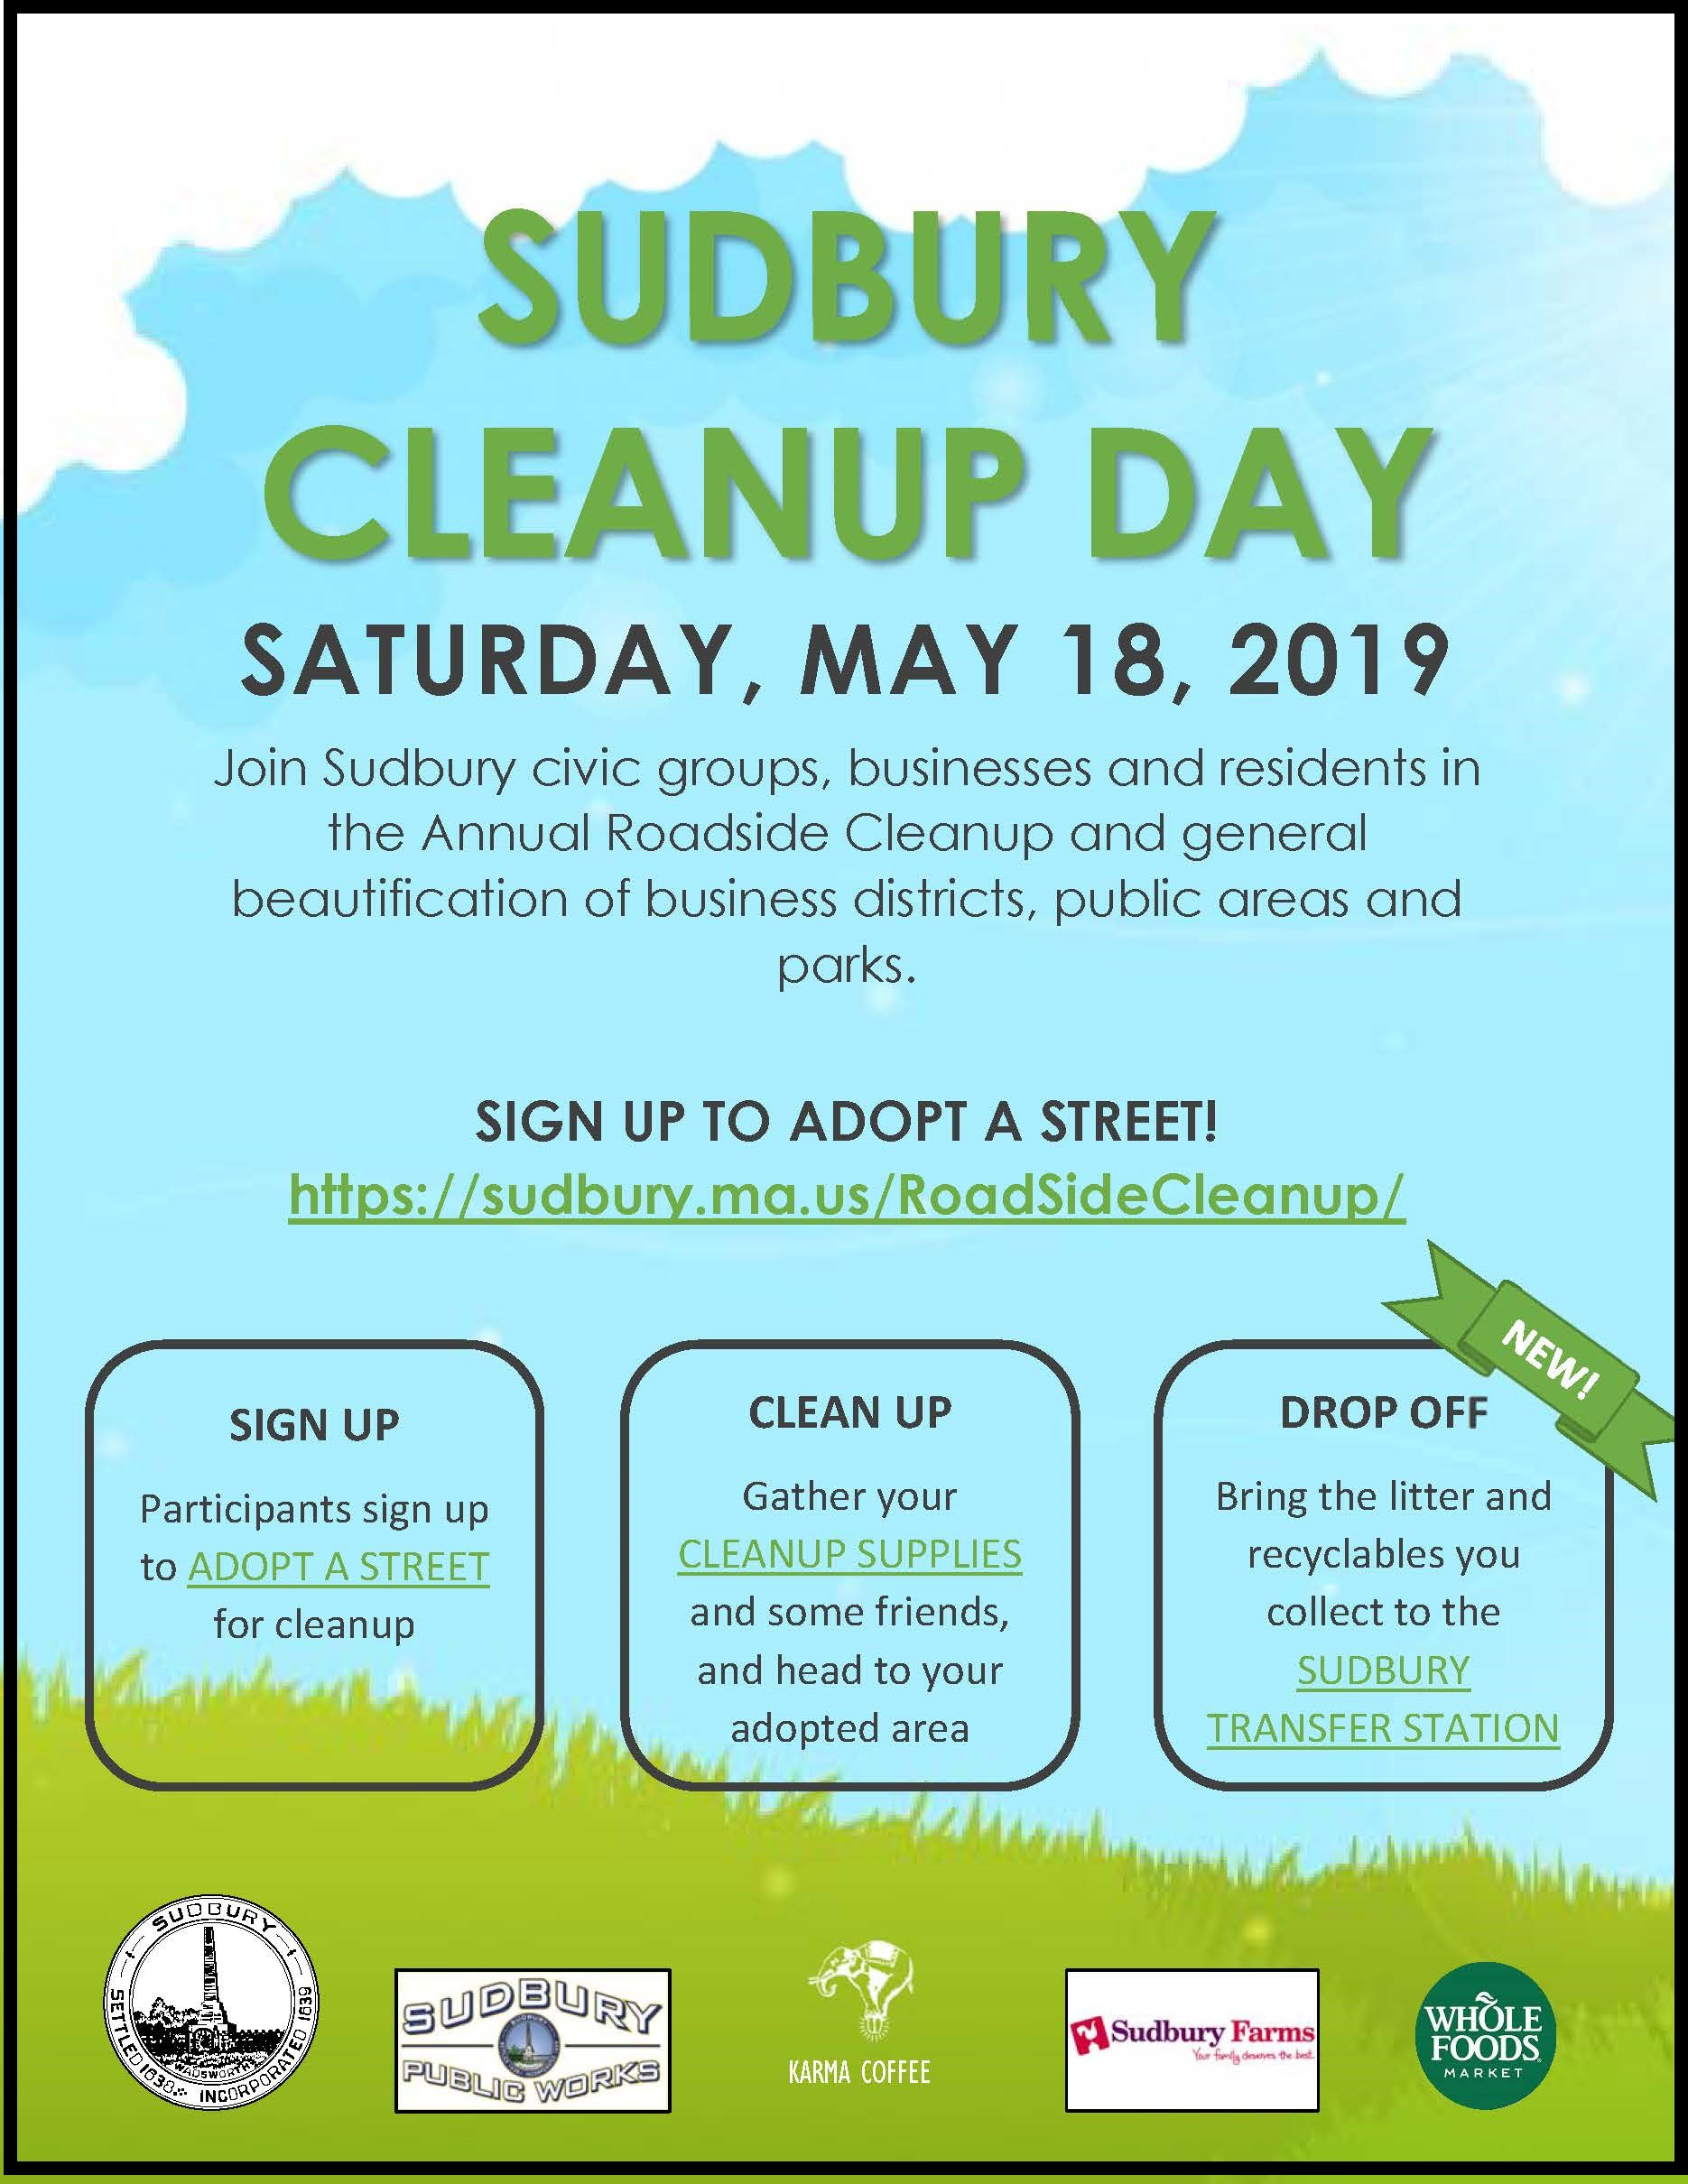 Sudbury Cleanup Day